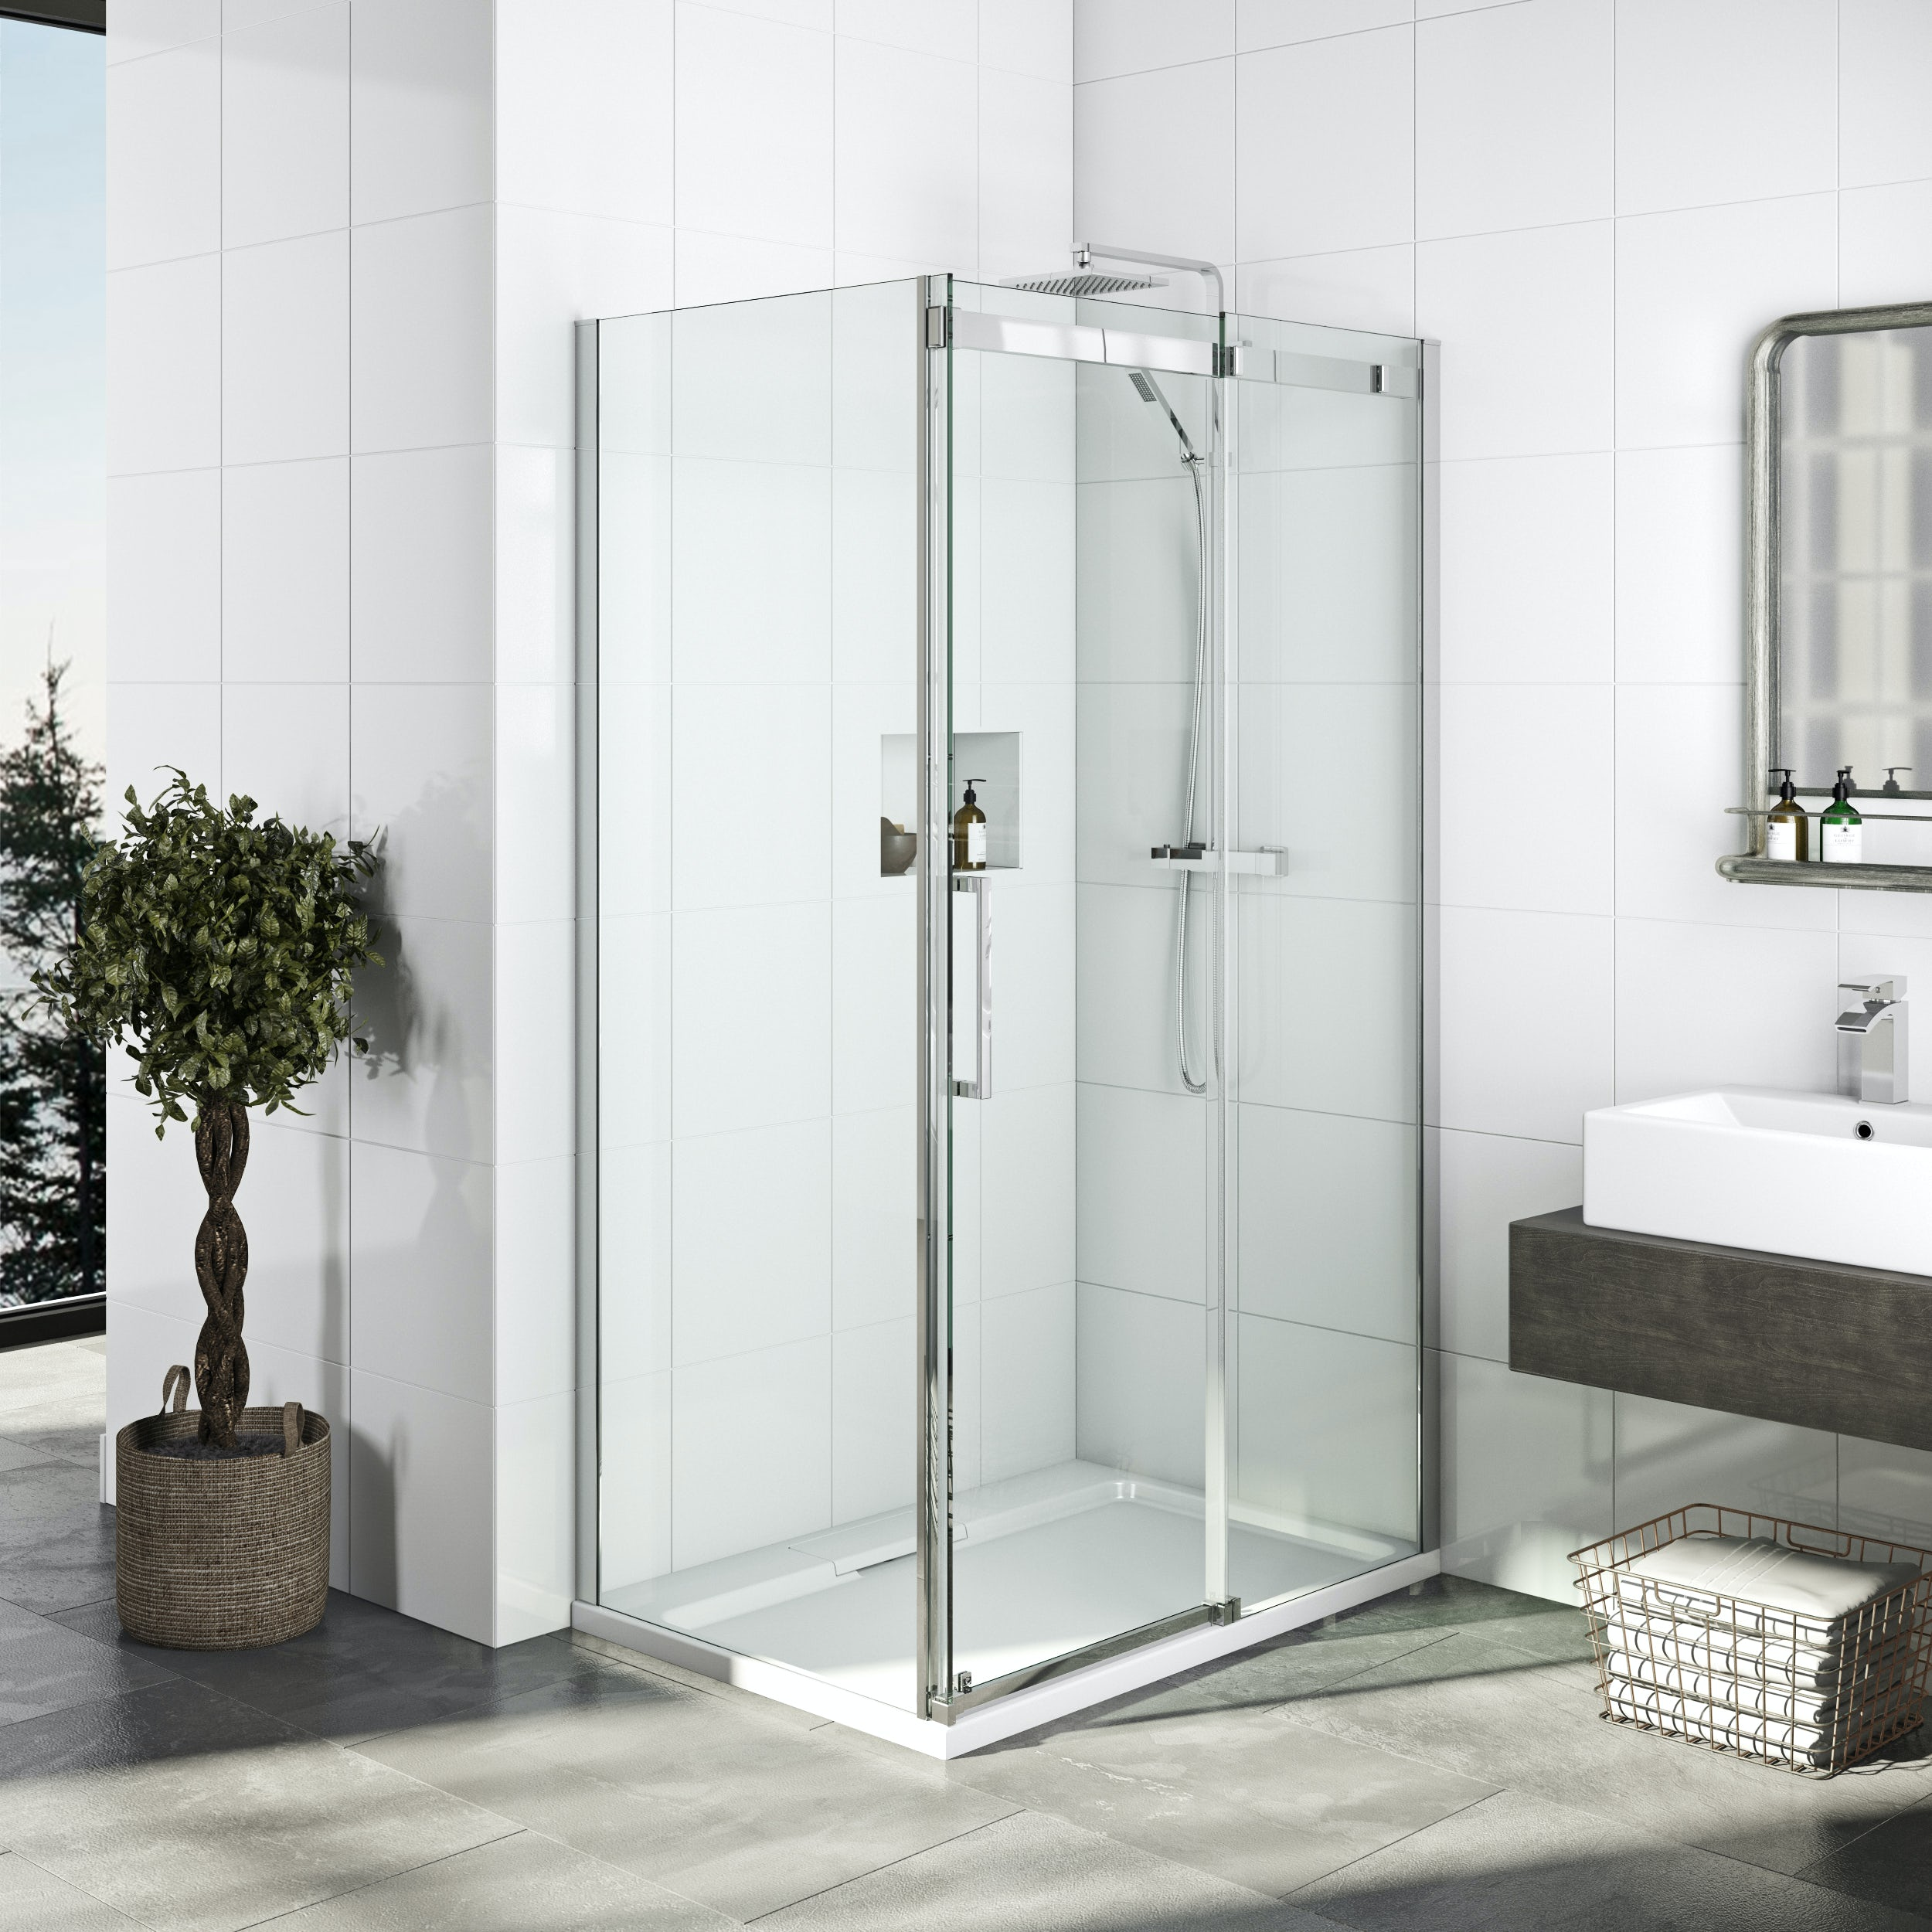 mode elite 10mm frameless shower enclosure